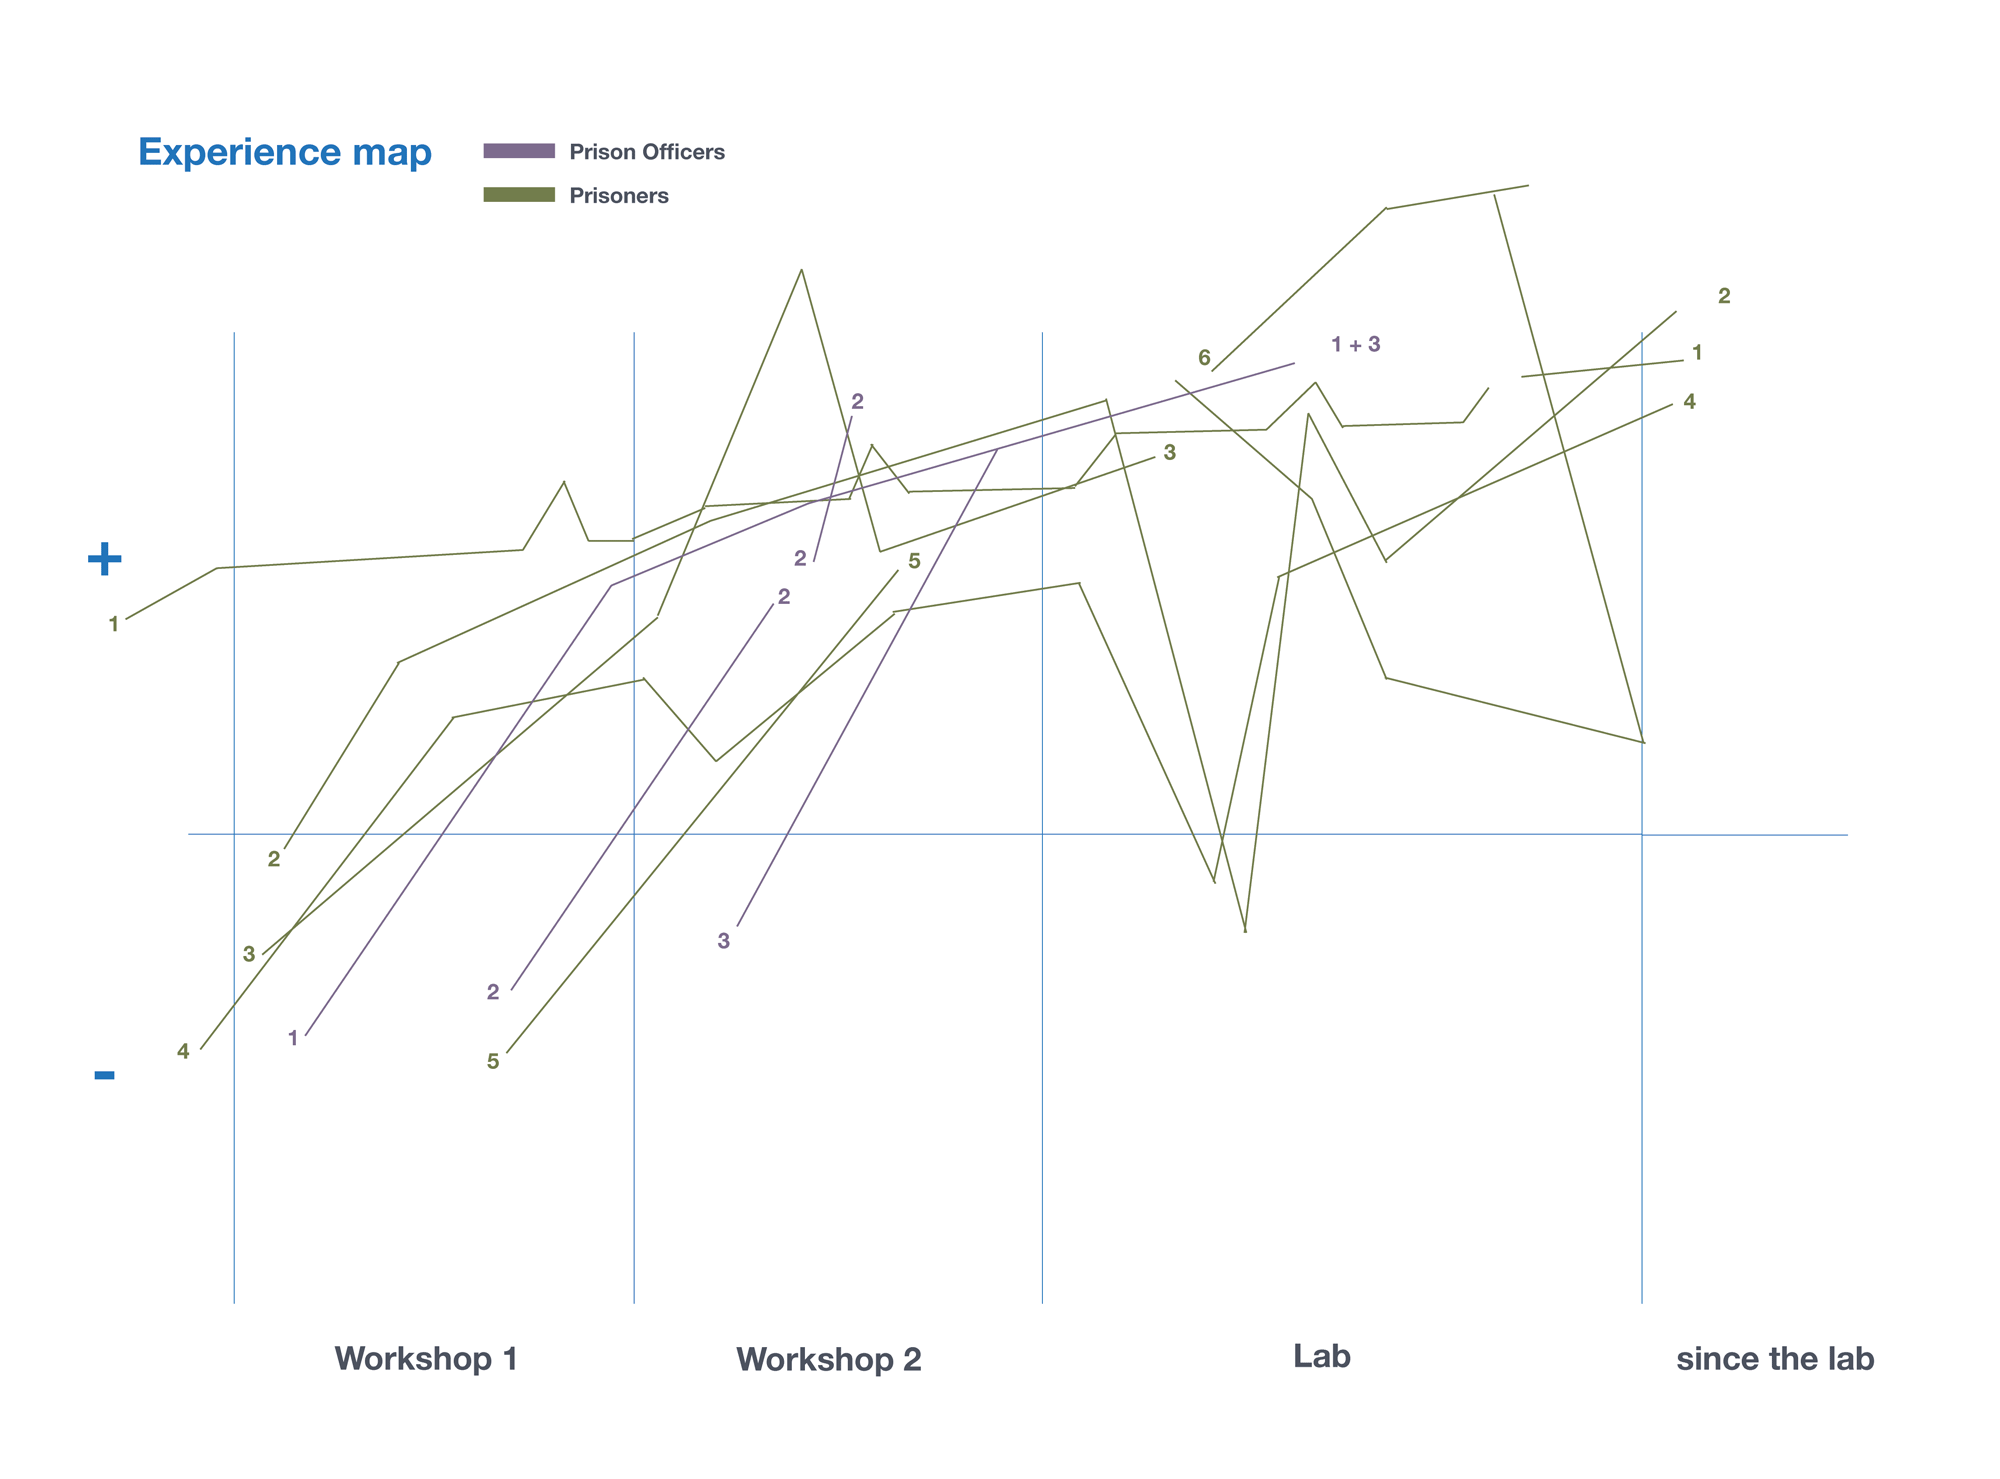 peoples experiences on a graph